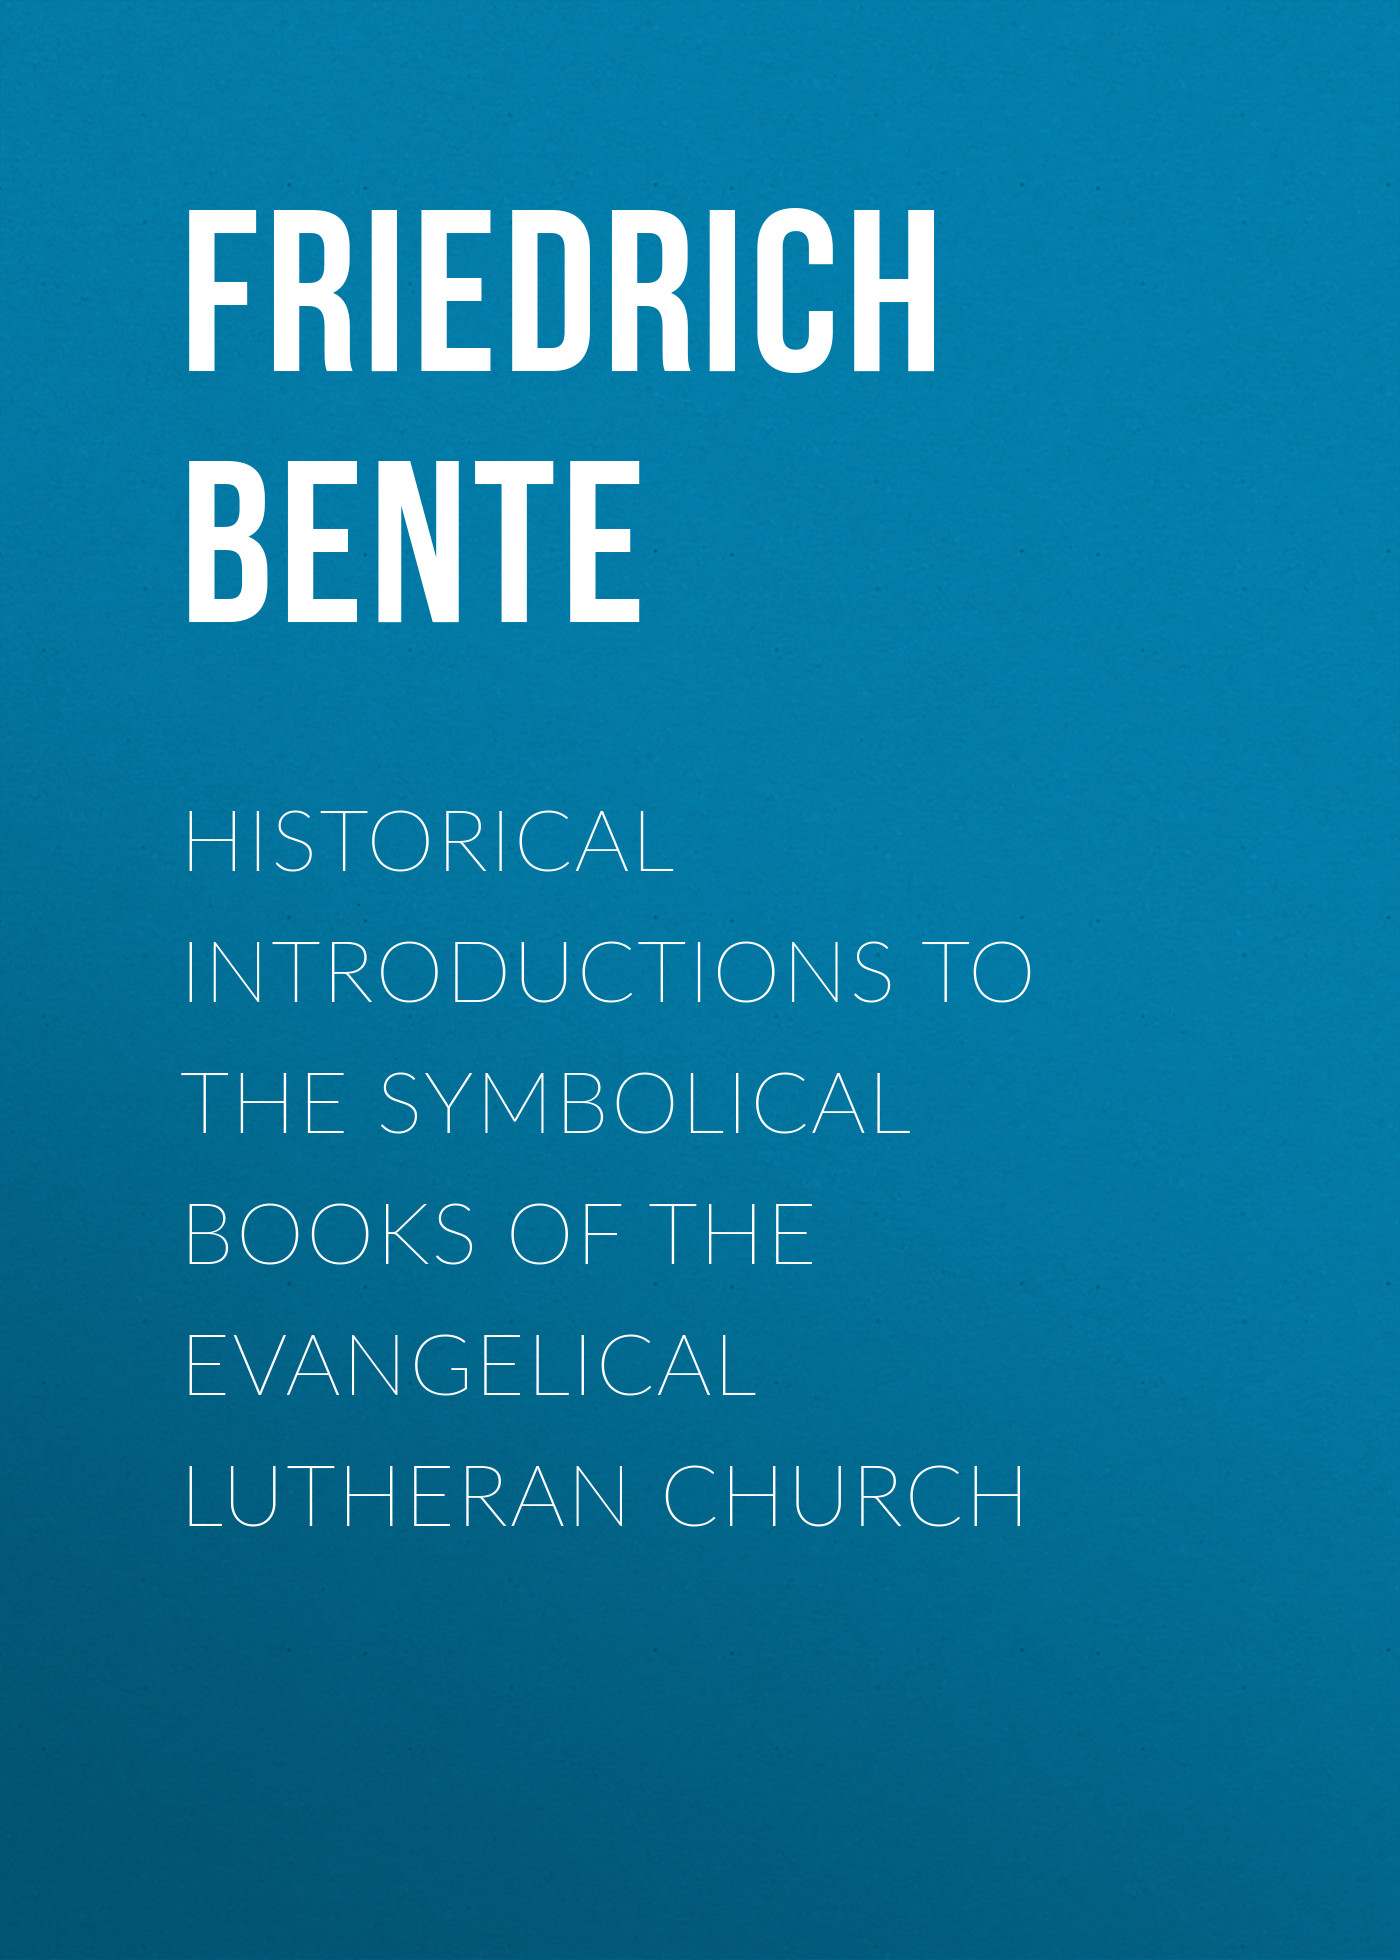 Bente Friedrich Historical Introductions to the Symbolical Books of the Evangelical Lutheran Church